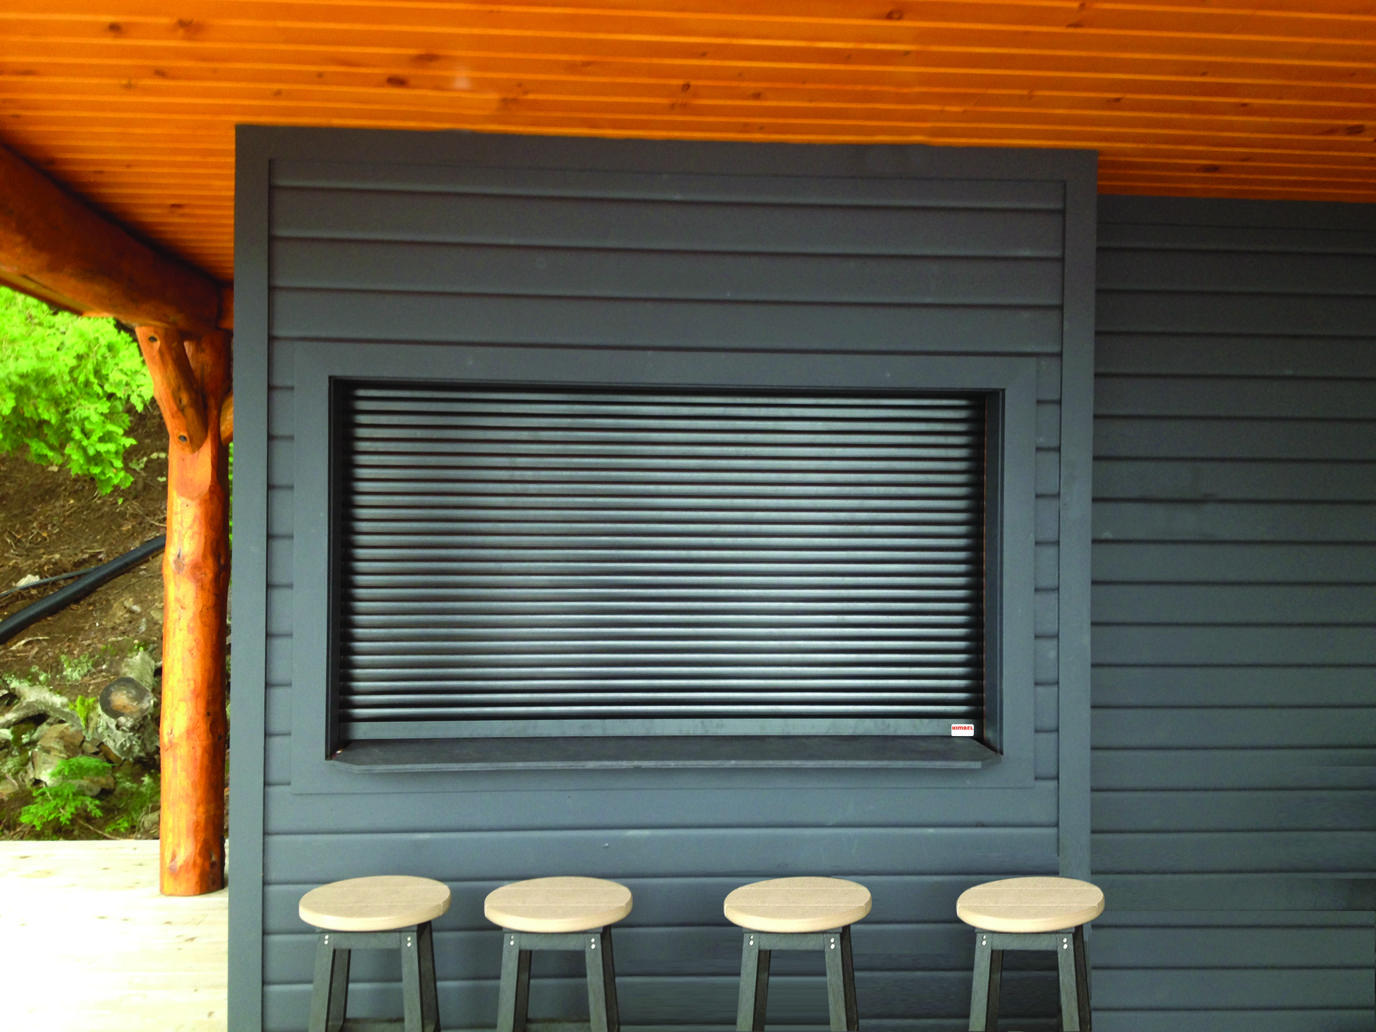 cabana security roller shutters for windows www kimbel ca roller shutters pool cabana roller doors roller shutters pool cabana roller doors